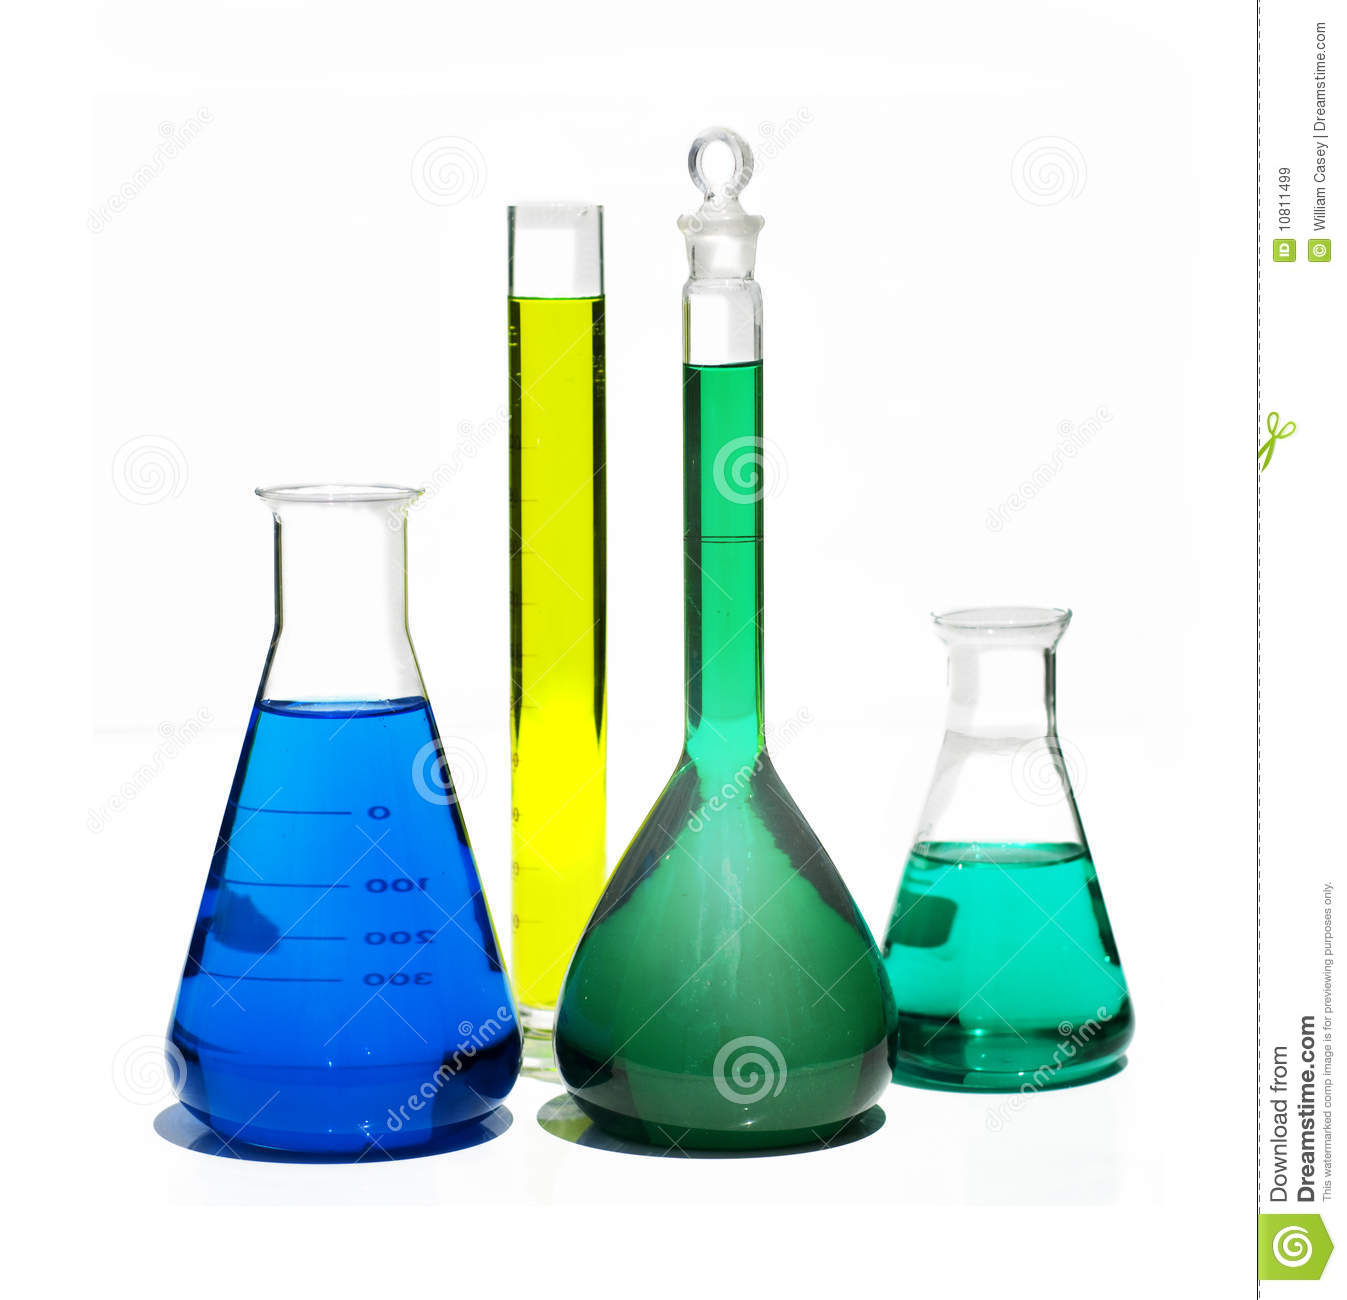 chem lab Chemistry lab equipment pictures, names, uses learn with flashcards, games, and more — for free.